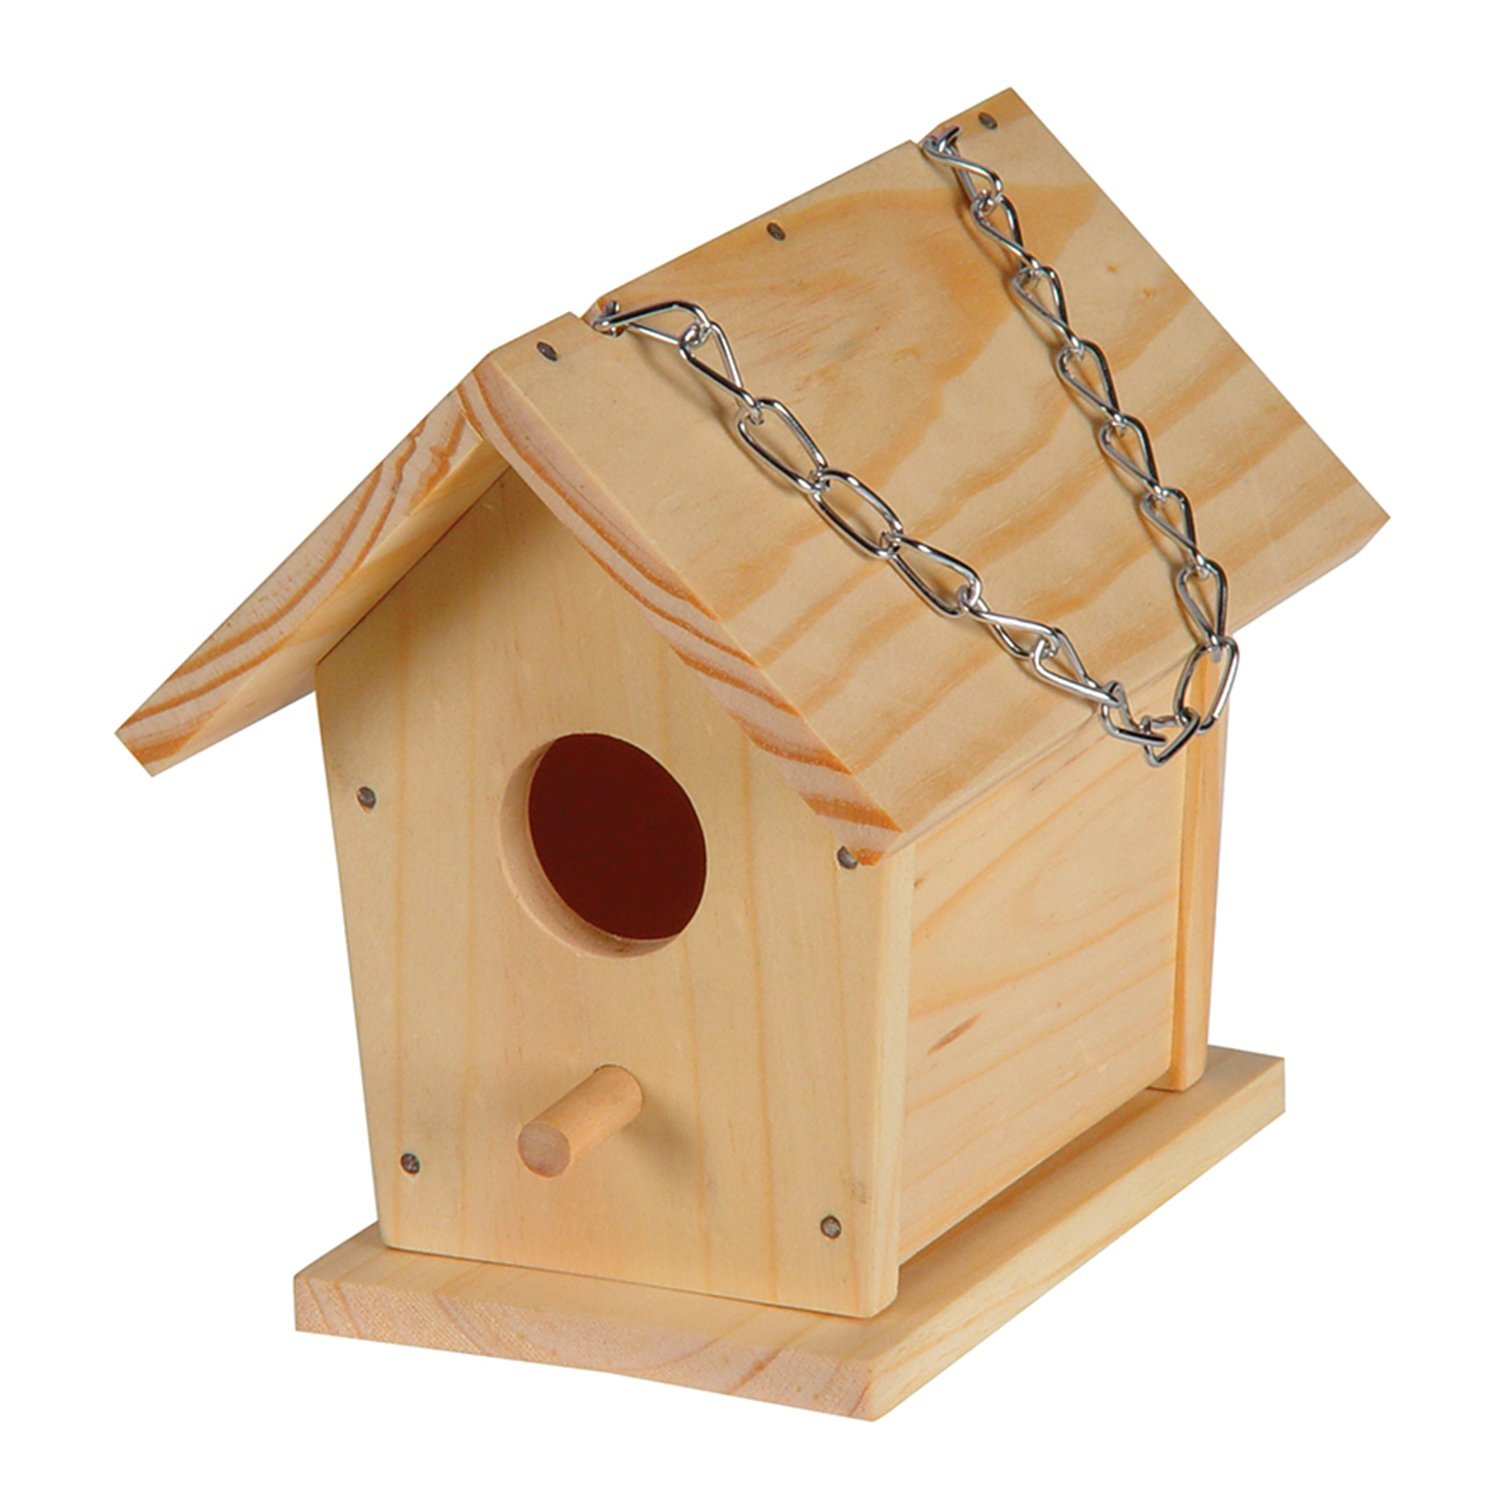 Wildlife houses for birds bats bees ladybugs and even Make your own toad house